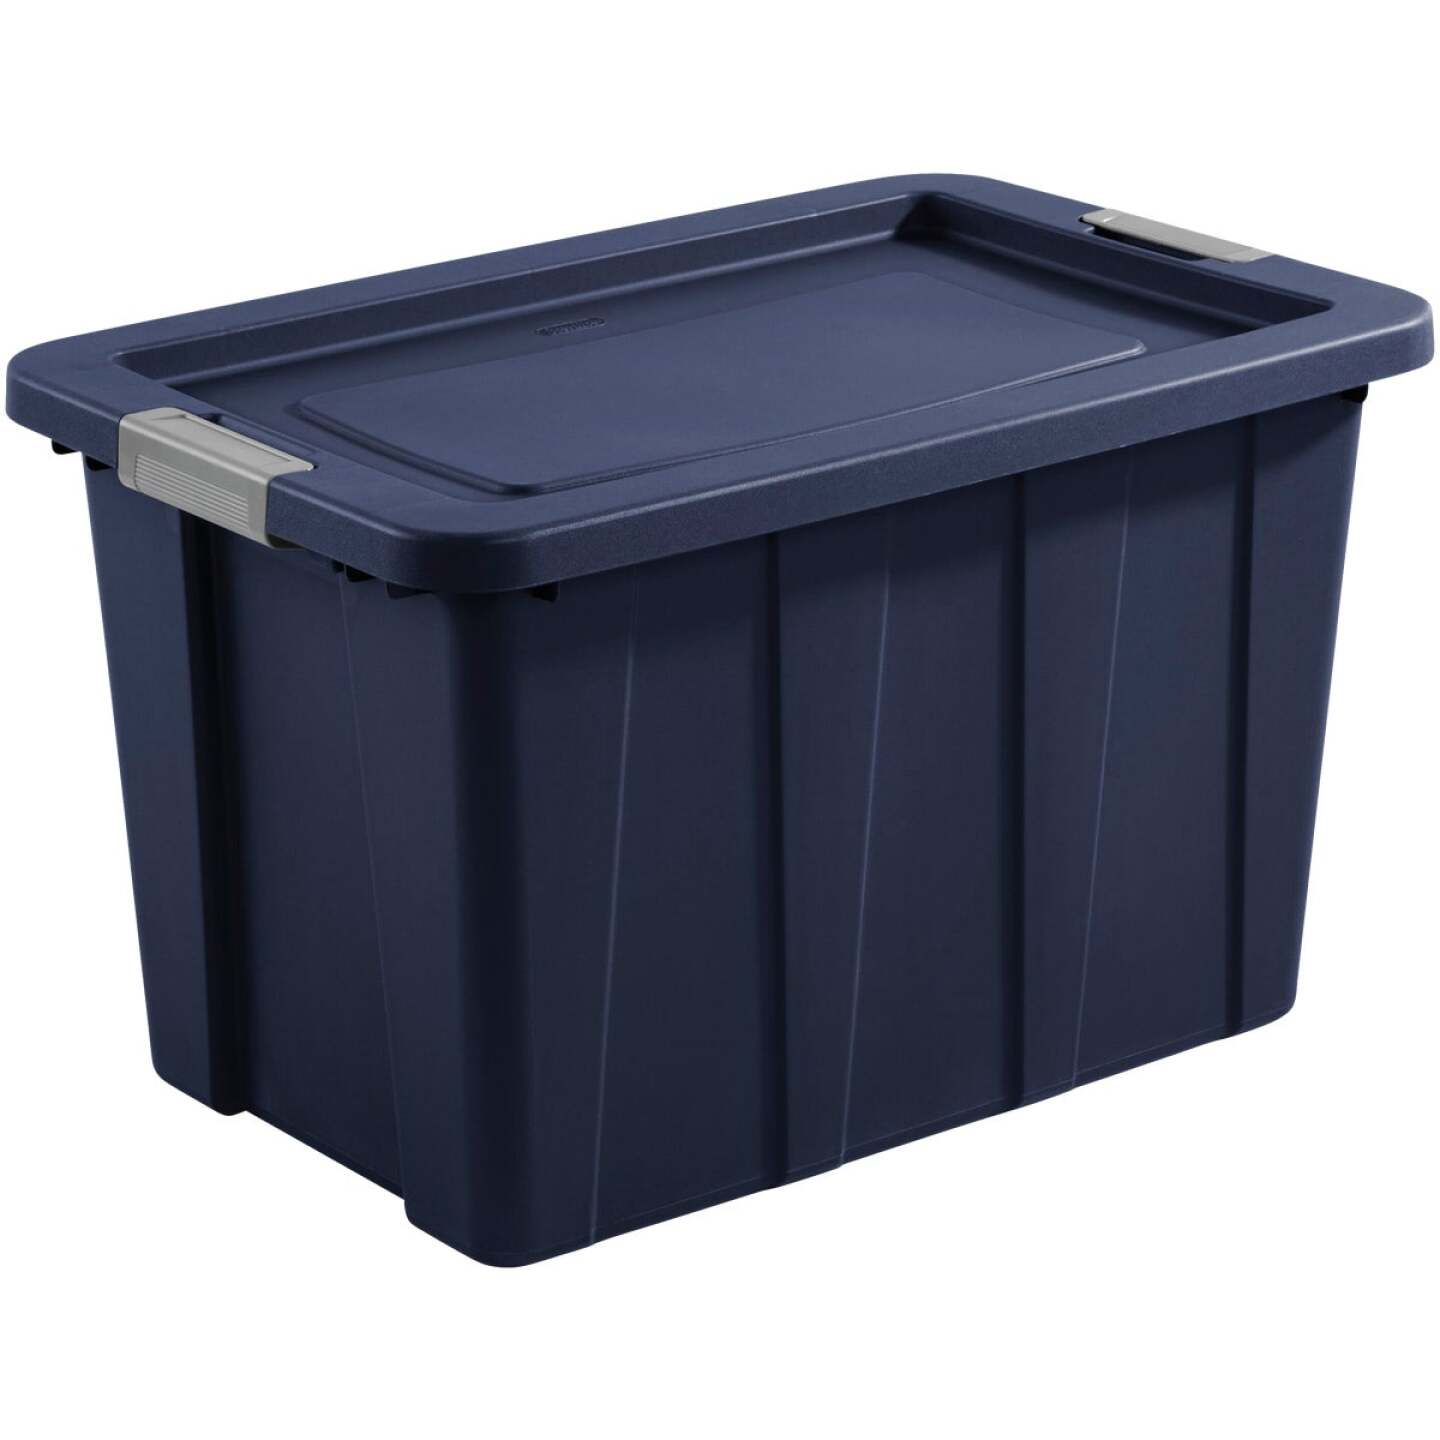 Sterilite Tuff1 30 Gal. Dark Indigo Latching Tote with Titanium Latches Image 1